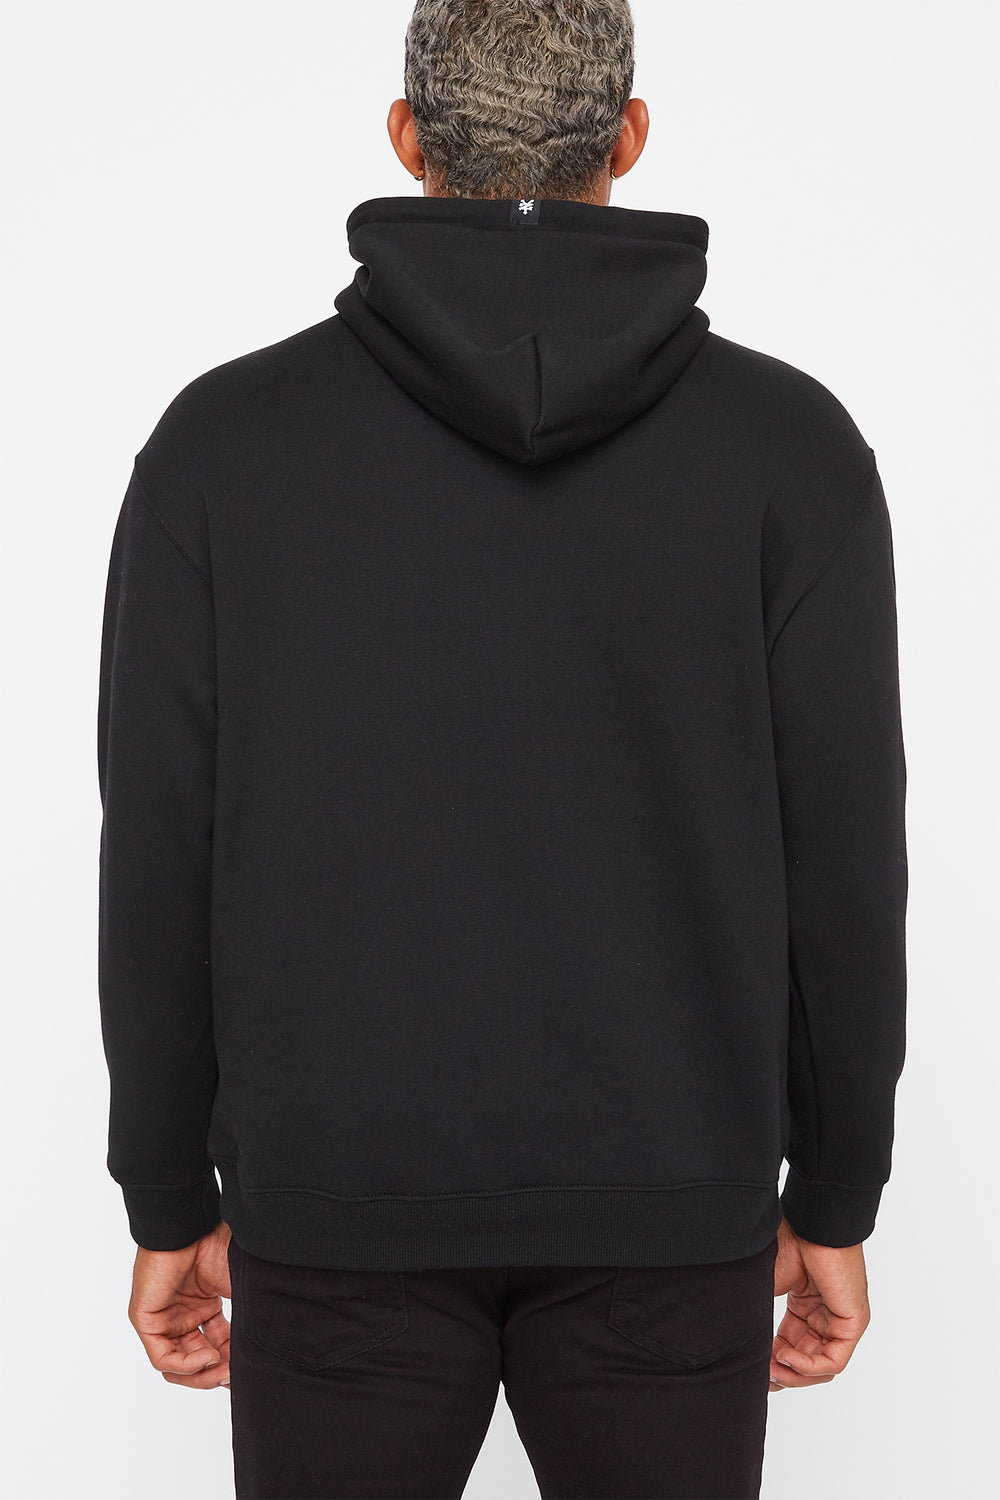 Zoo York Mens Behind Pocket Logo Hoodie Black